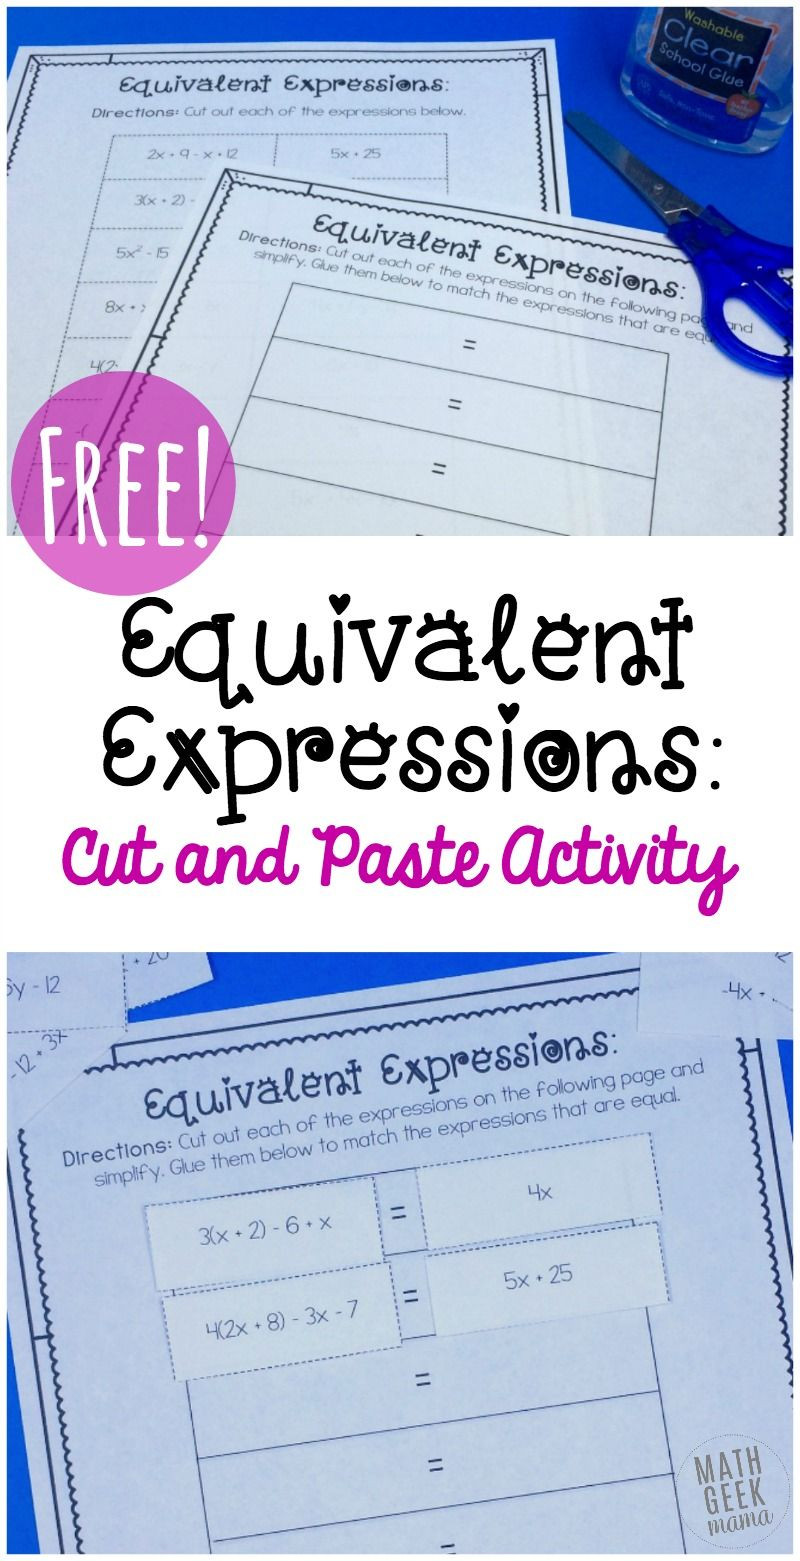 Equivalent Expressions Worksheet 6th Grade Simple Equivalent Expressions Activity Free